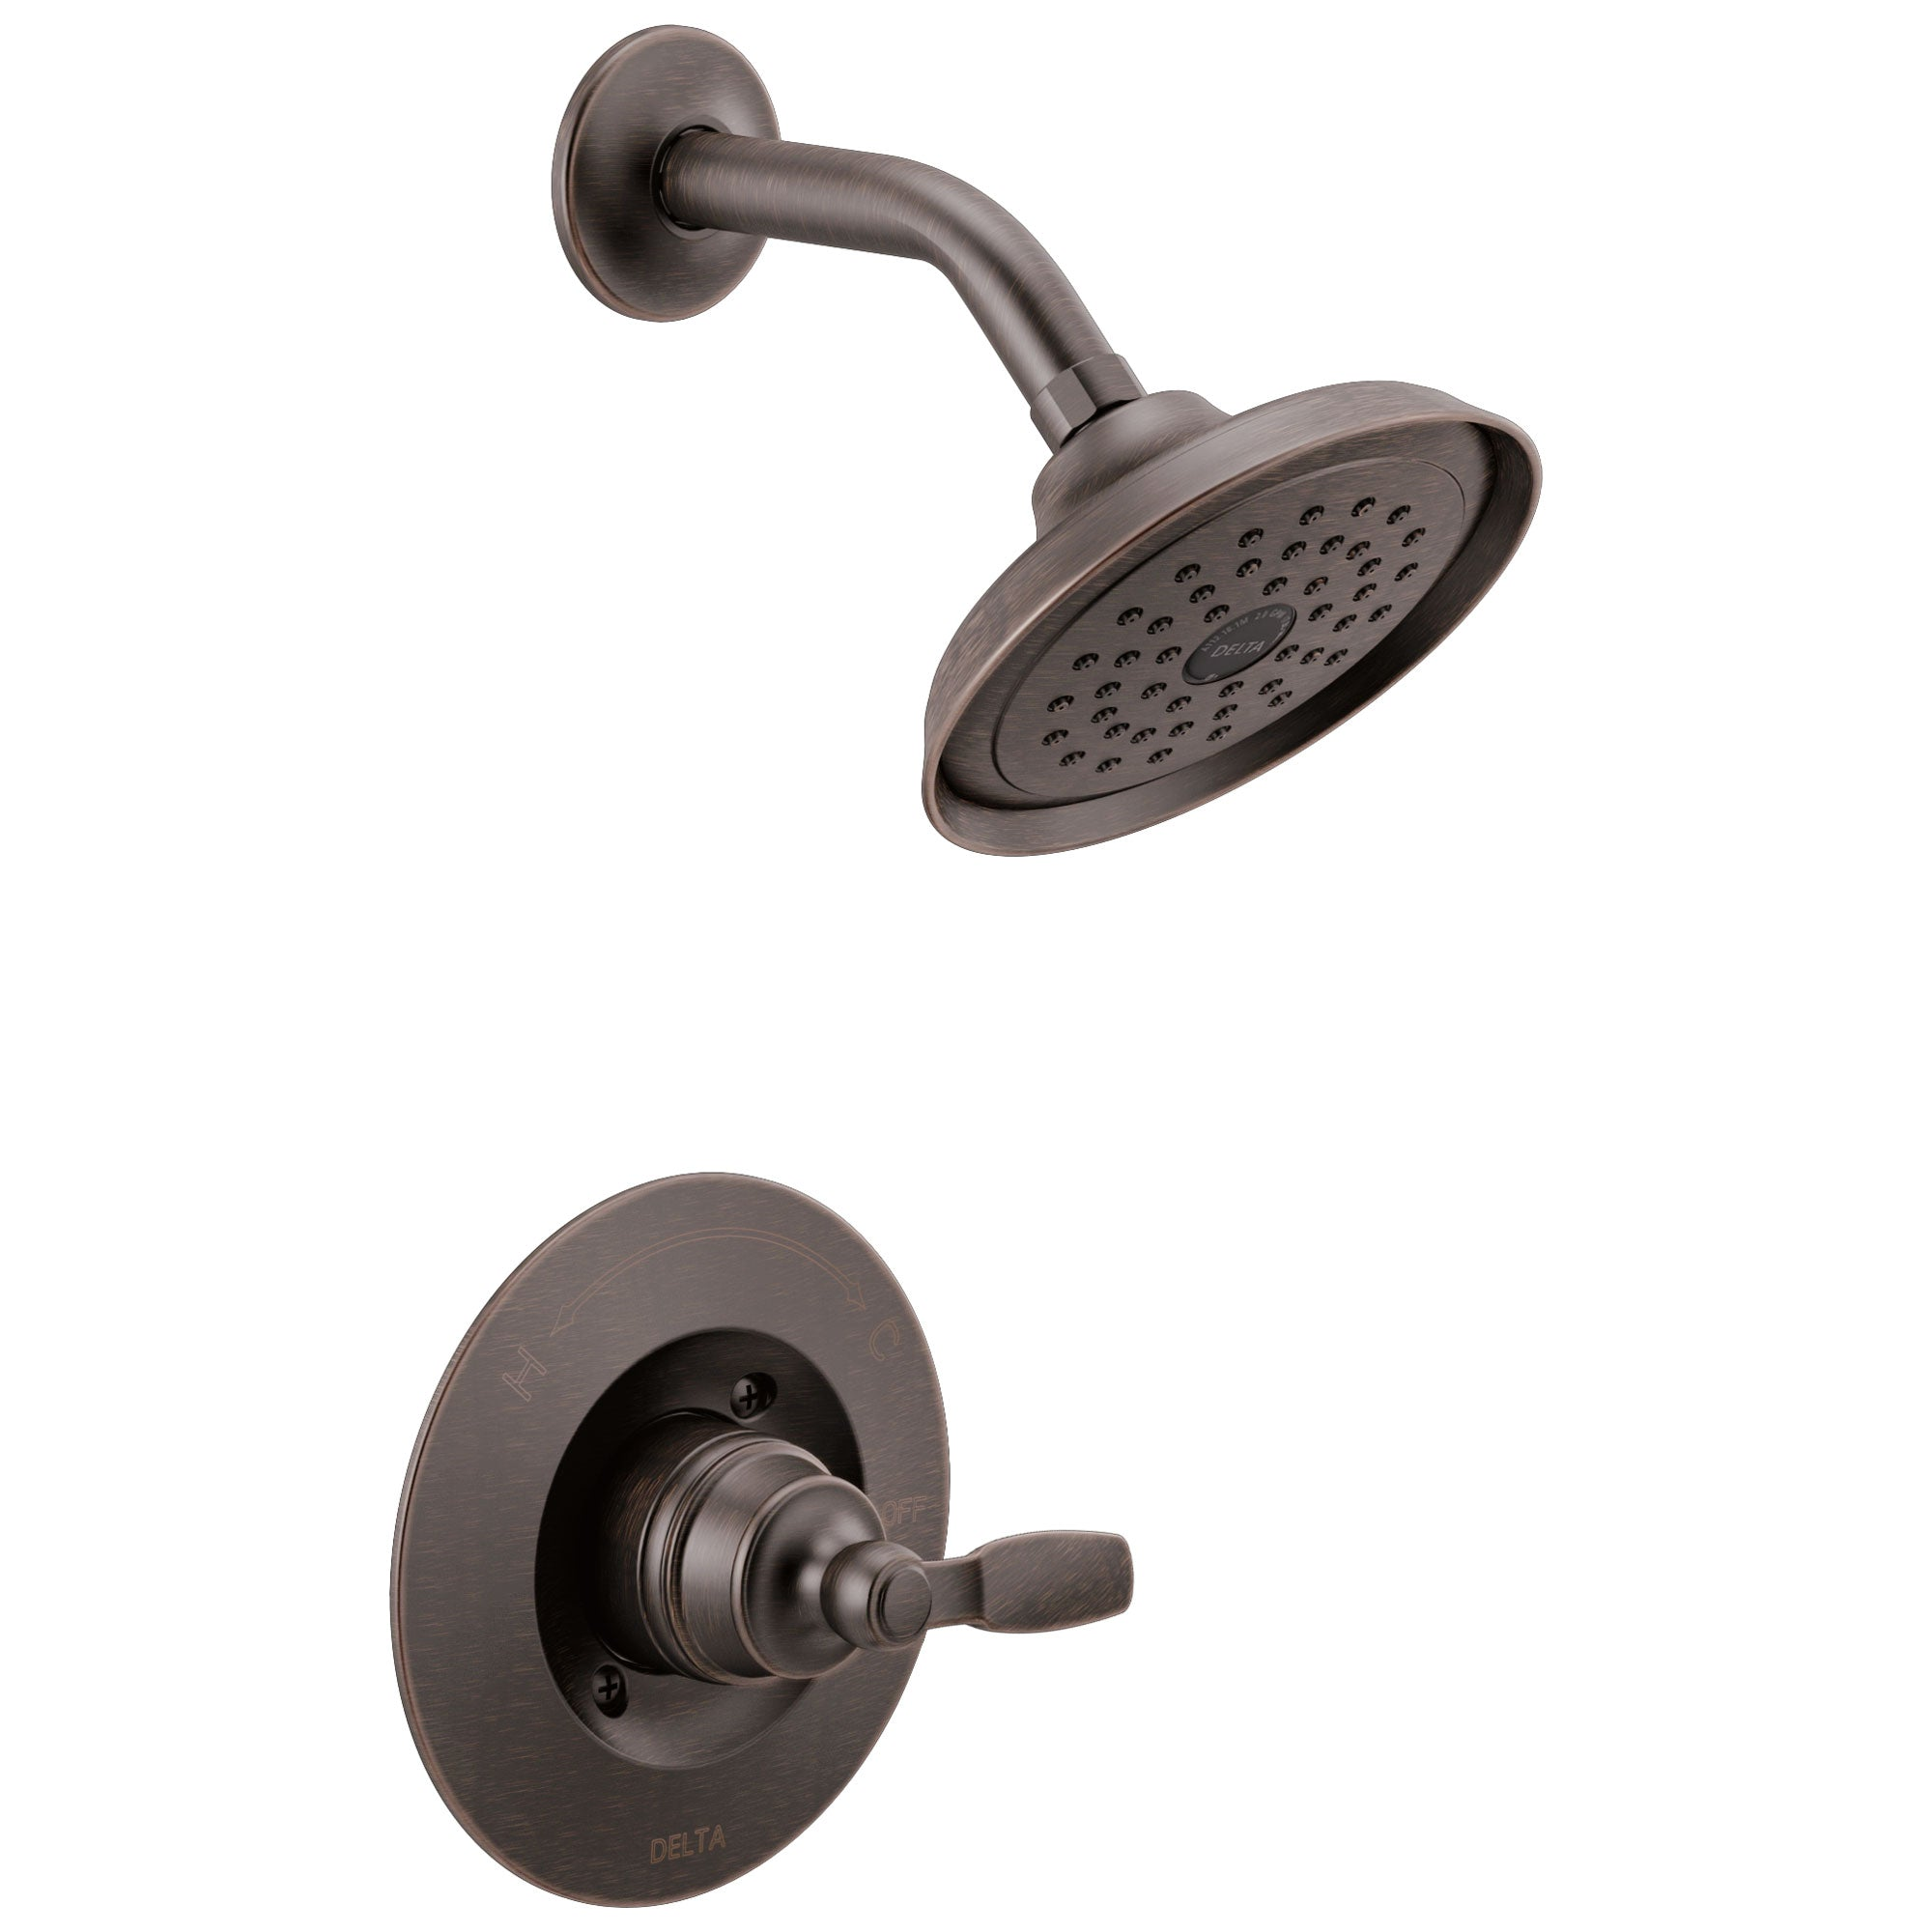 Delta Woodhurst Venetian Bronze Finish Shower only Faucet Trim Kit (Requires Valve) DT14232RB